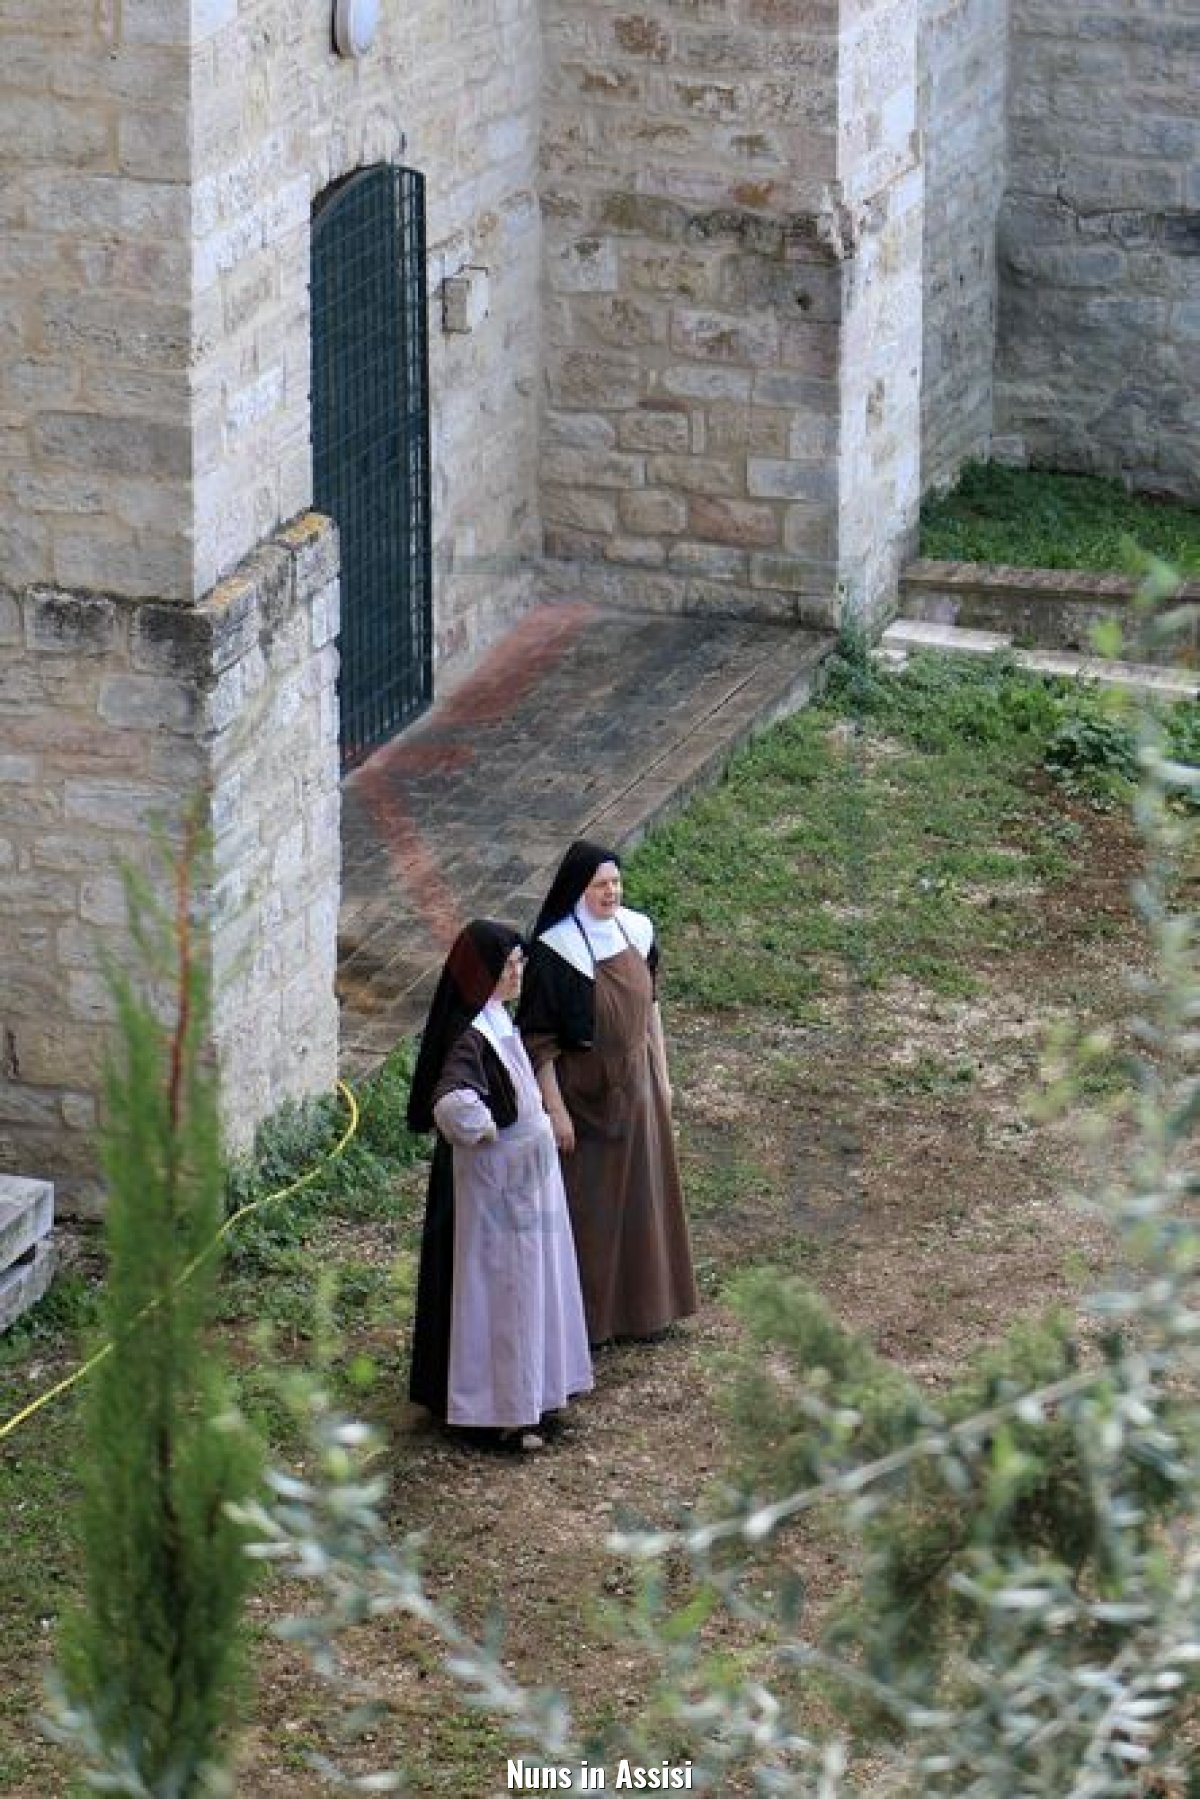 Nuns in Assisi